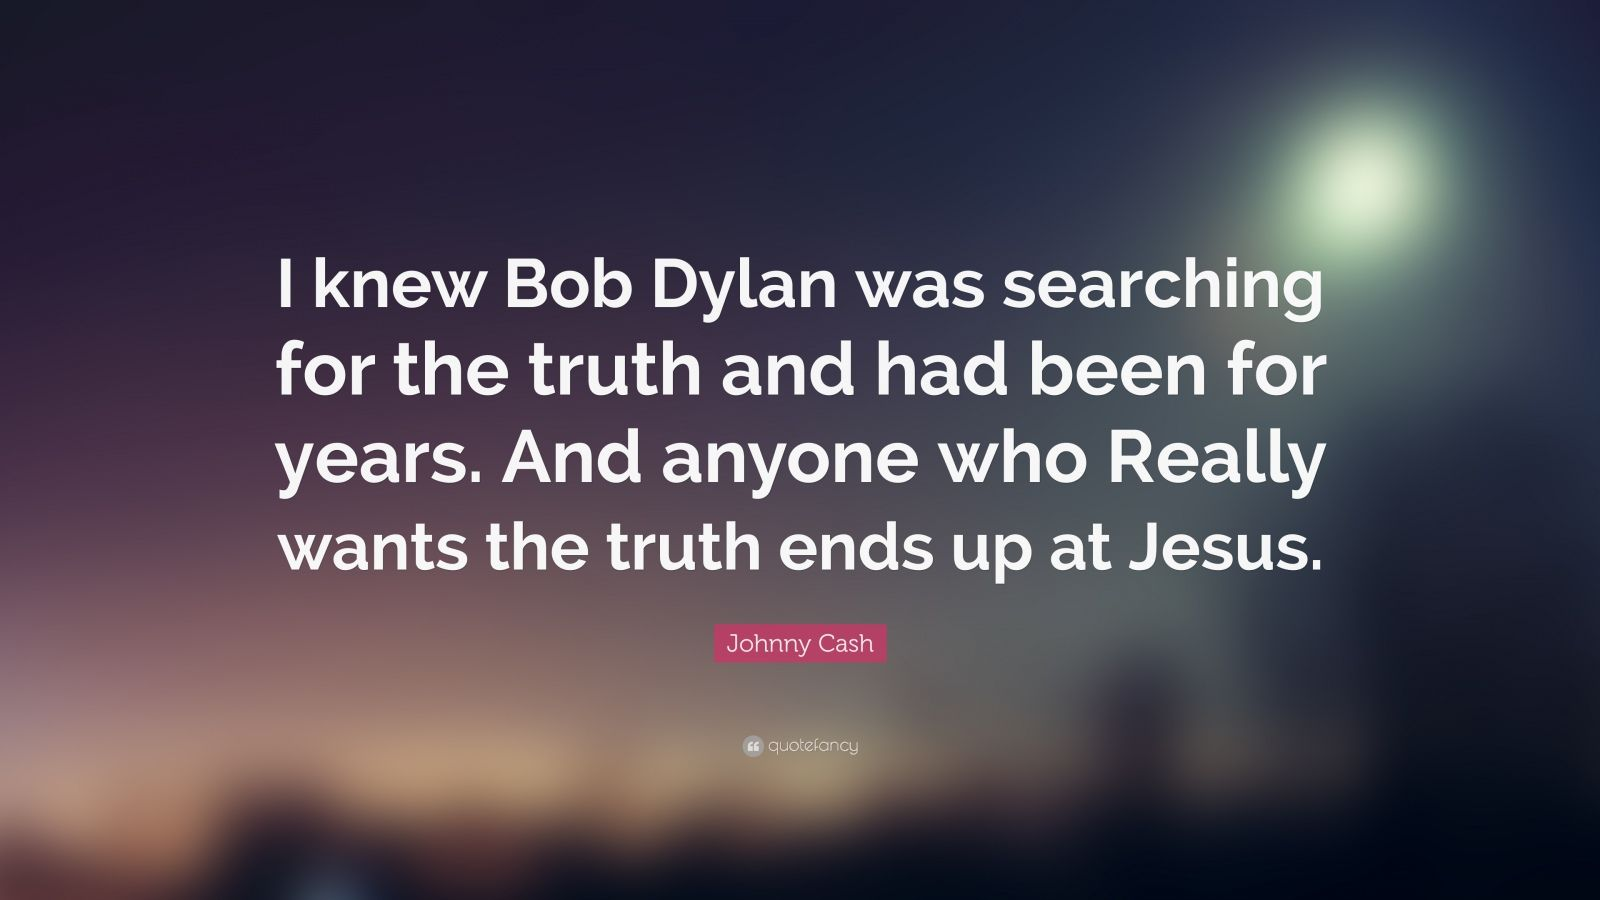 """Johnny Cash Quote: """"I knew Bob Dylan was searching for the truth and had been for years. And anyone who Really wants the truth ends up at Jesus."""""""